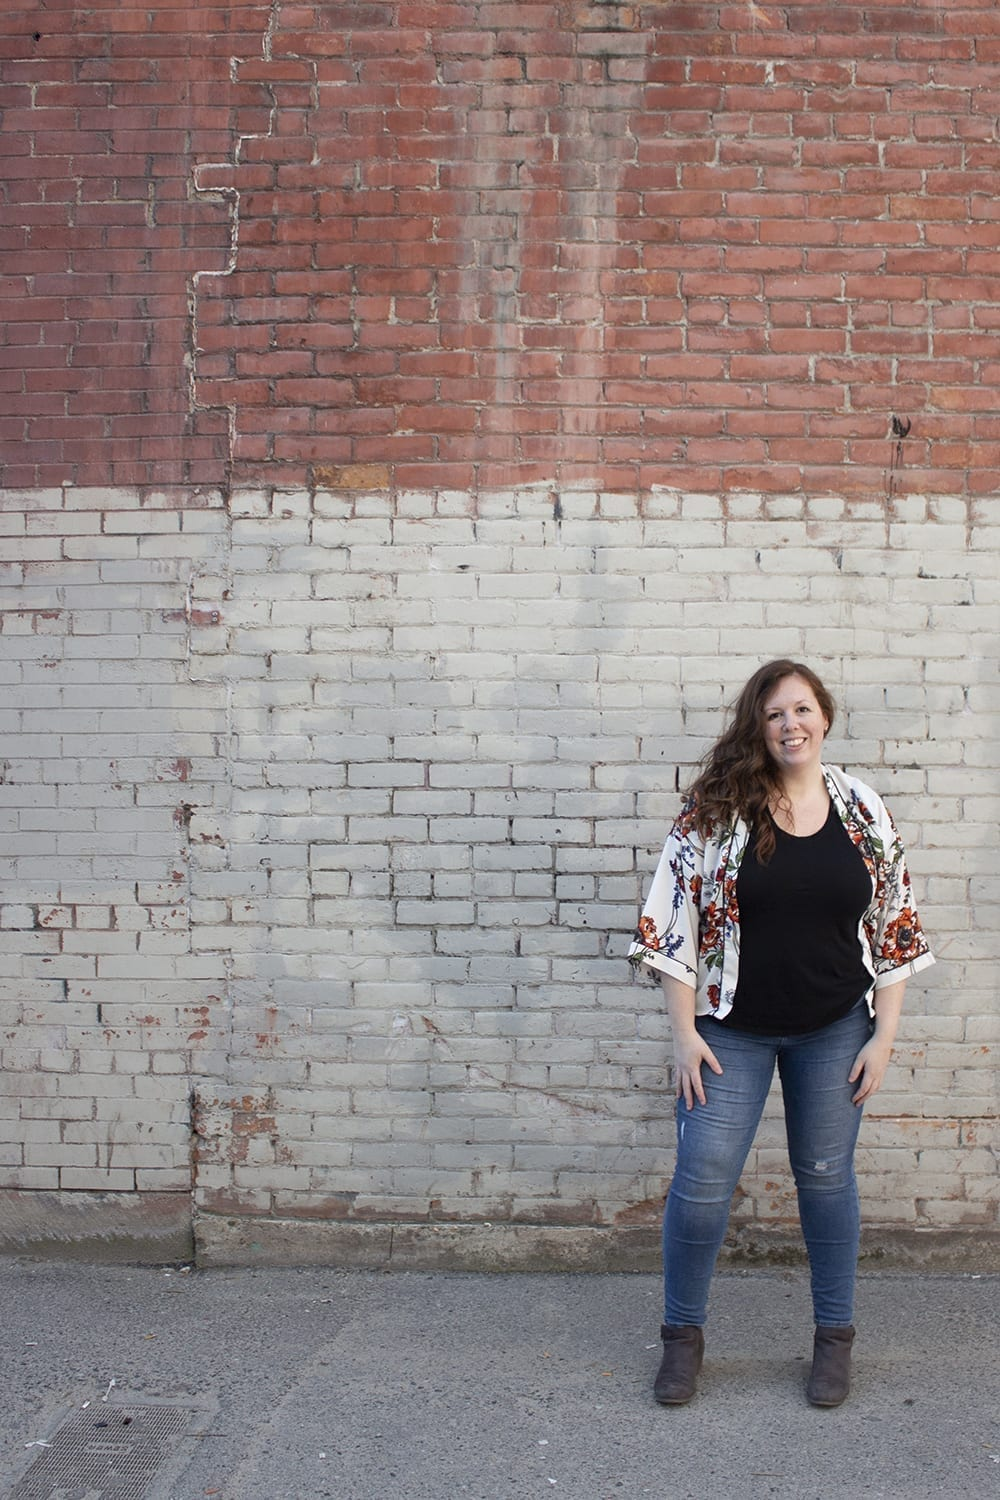 Photo of graphic designer Carrie Mayhew